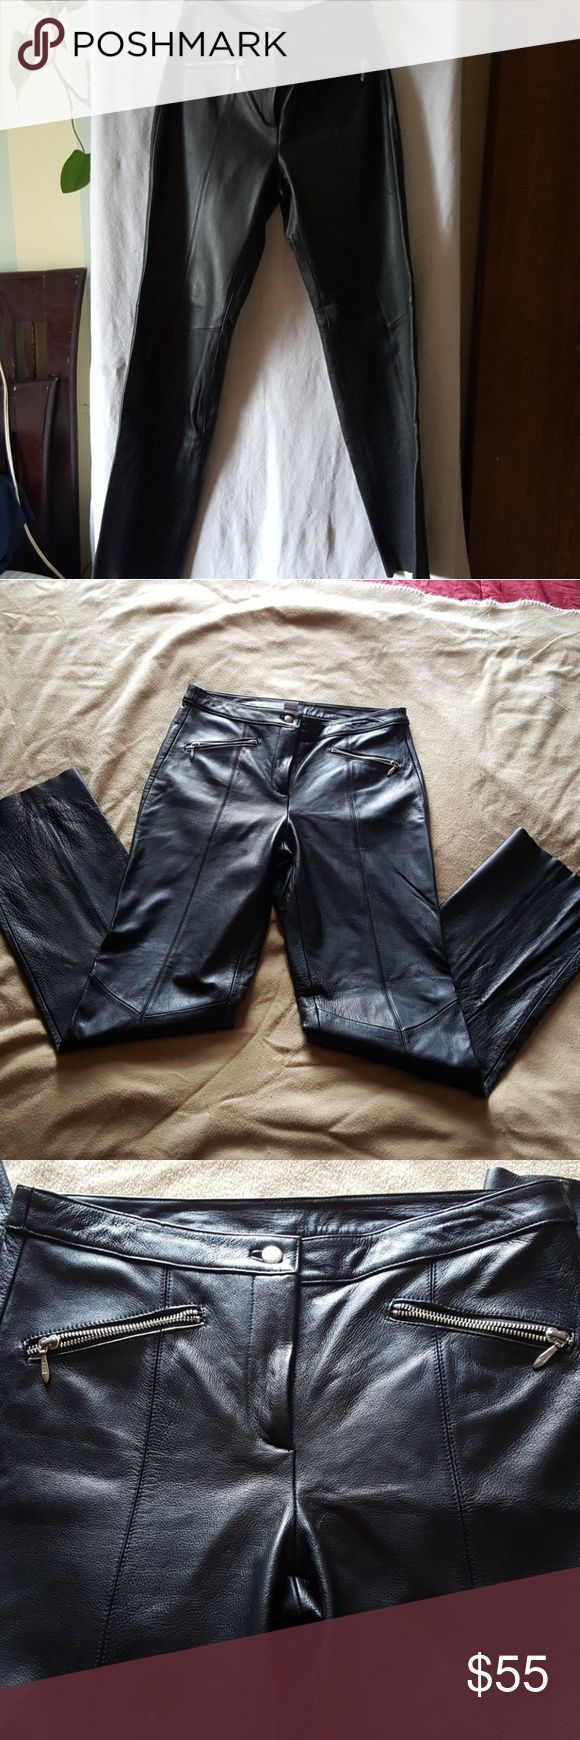 Wilson's Leather Maxima Leather Motorcycle Pants These sexy leather pants will have you out on the bike everyday.  Soft supple leather feel.  They are lined all the way down to just below the knee. Zippered pockets.  Size 8. Wilsons Leather Pants